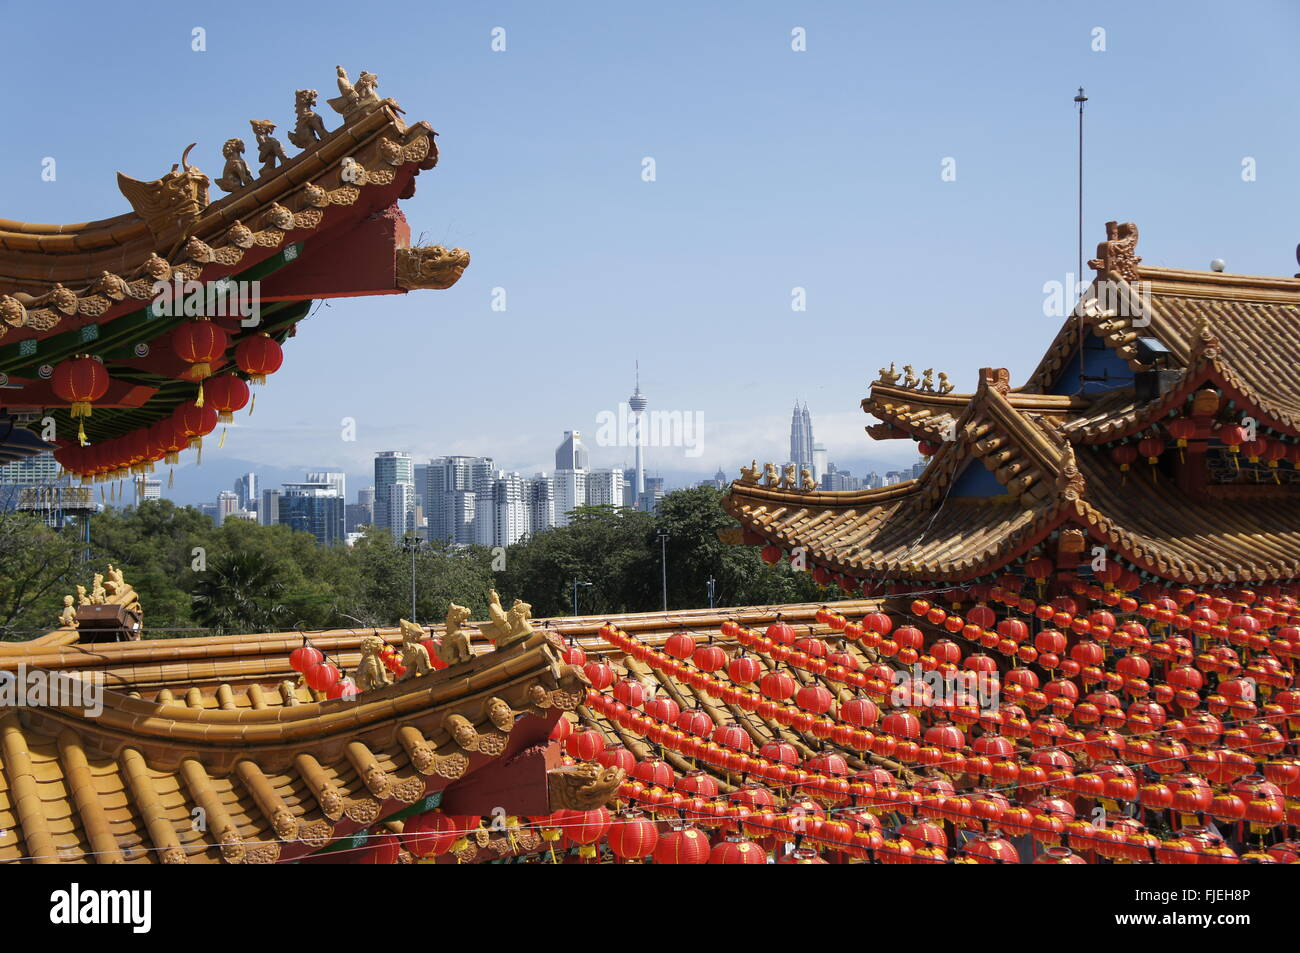 Kuala Lumpur skyline with KL Tower and Petronas Twin Towers, view from  Thean Hou temple - Stock Image